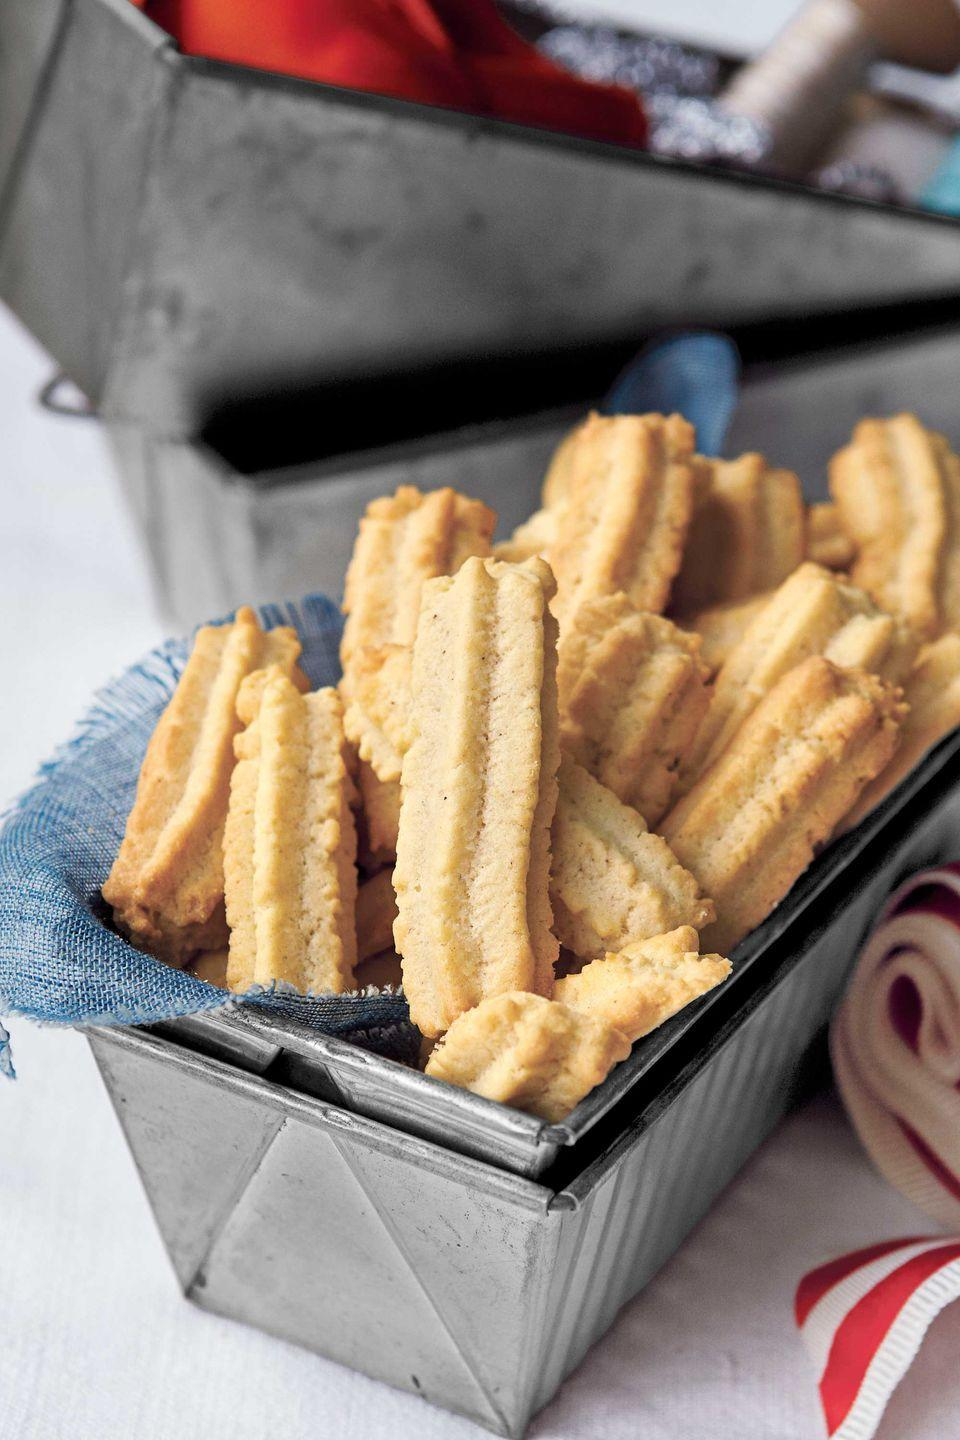 "<p>These simple piped delights contain a secret ingredient: ground cloves! Mild and savory, these cookies taste fantastic with coffee—consider wrapping them up with a bag of roast beans. </p><p><a href=""https://www.countryliving.com/food-drinks/recipes/a4095/nana-cookies-recipe-clx1211/"" rel=""nofollow noopener"" target=""_blank"" data-ylk=""slk:Get the recipe."" class=""link rapid-noclick-resp""><strong>Get the recipe.</strong></a></p>"